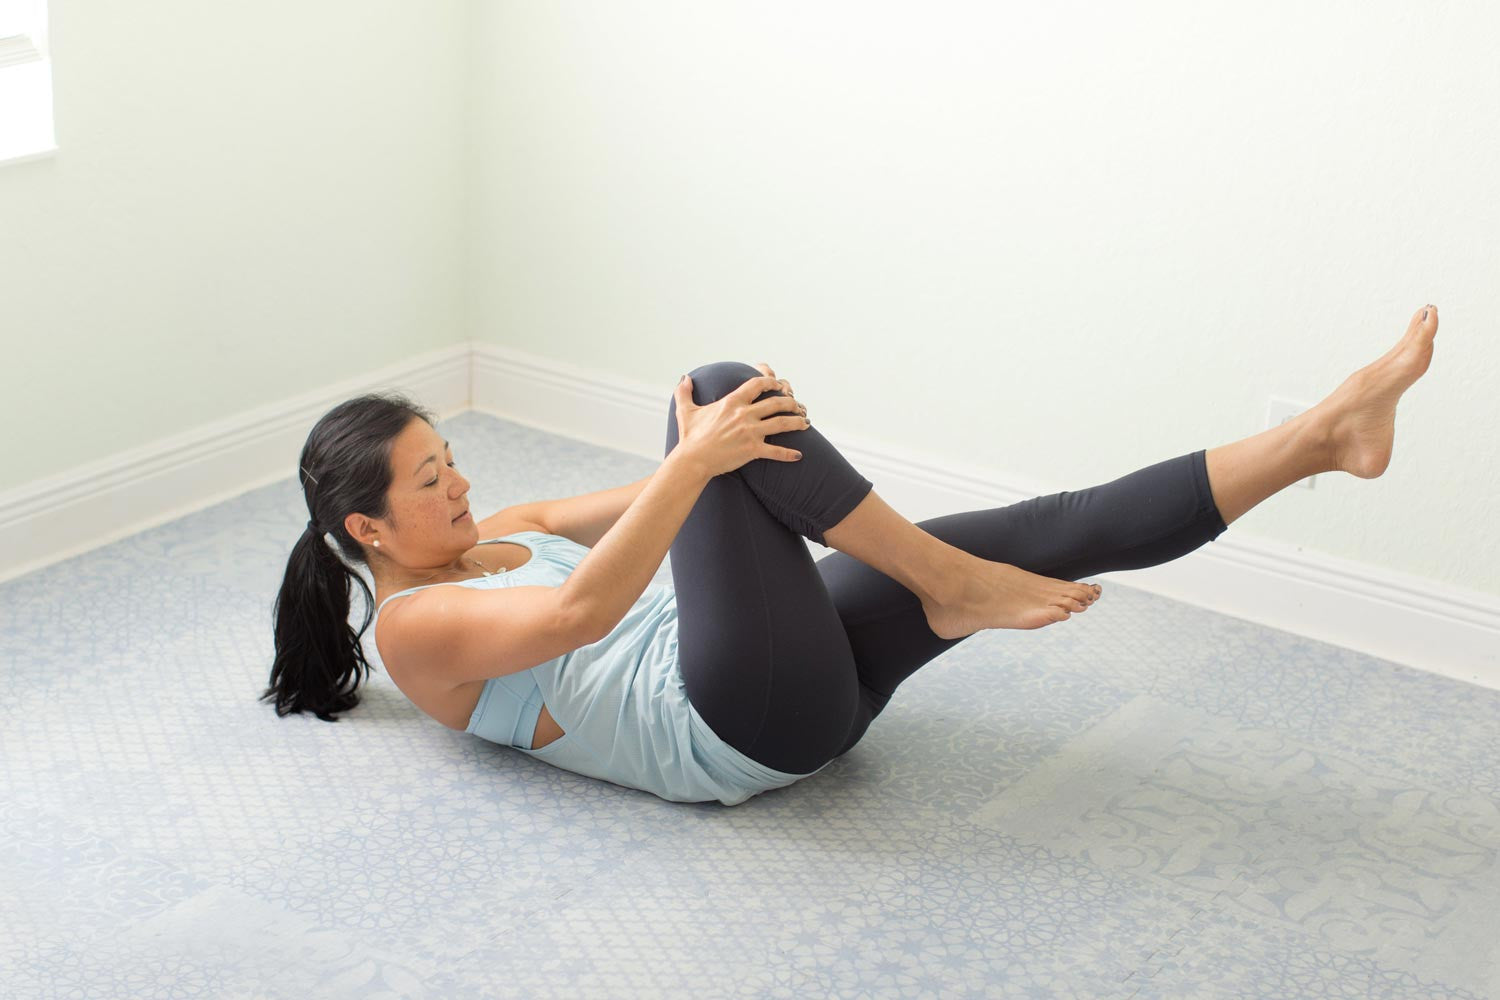 Ab Workout - Single Leg Stretch